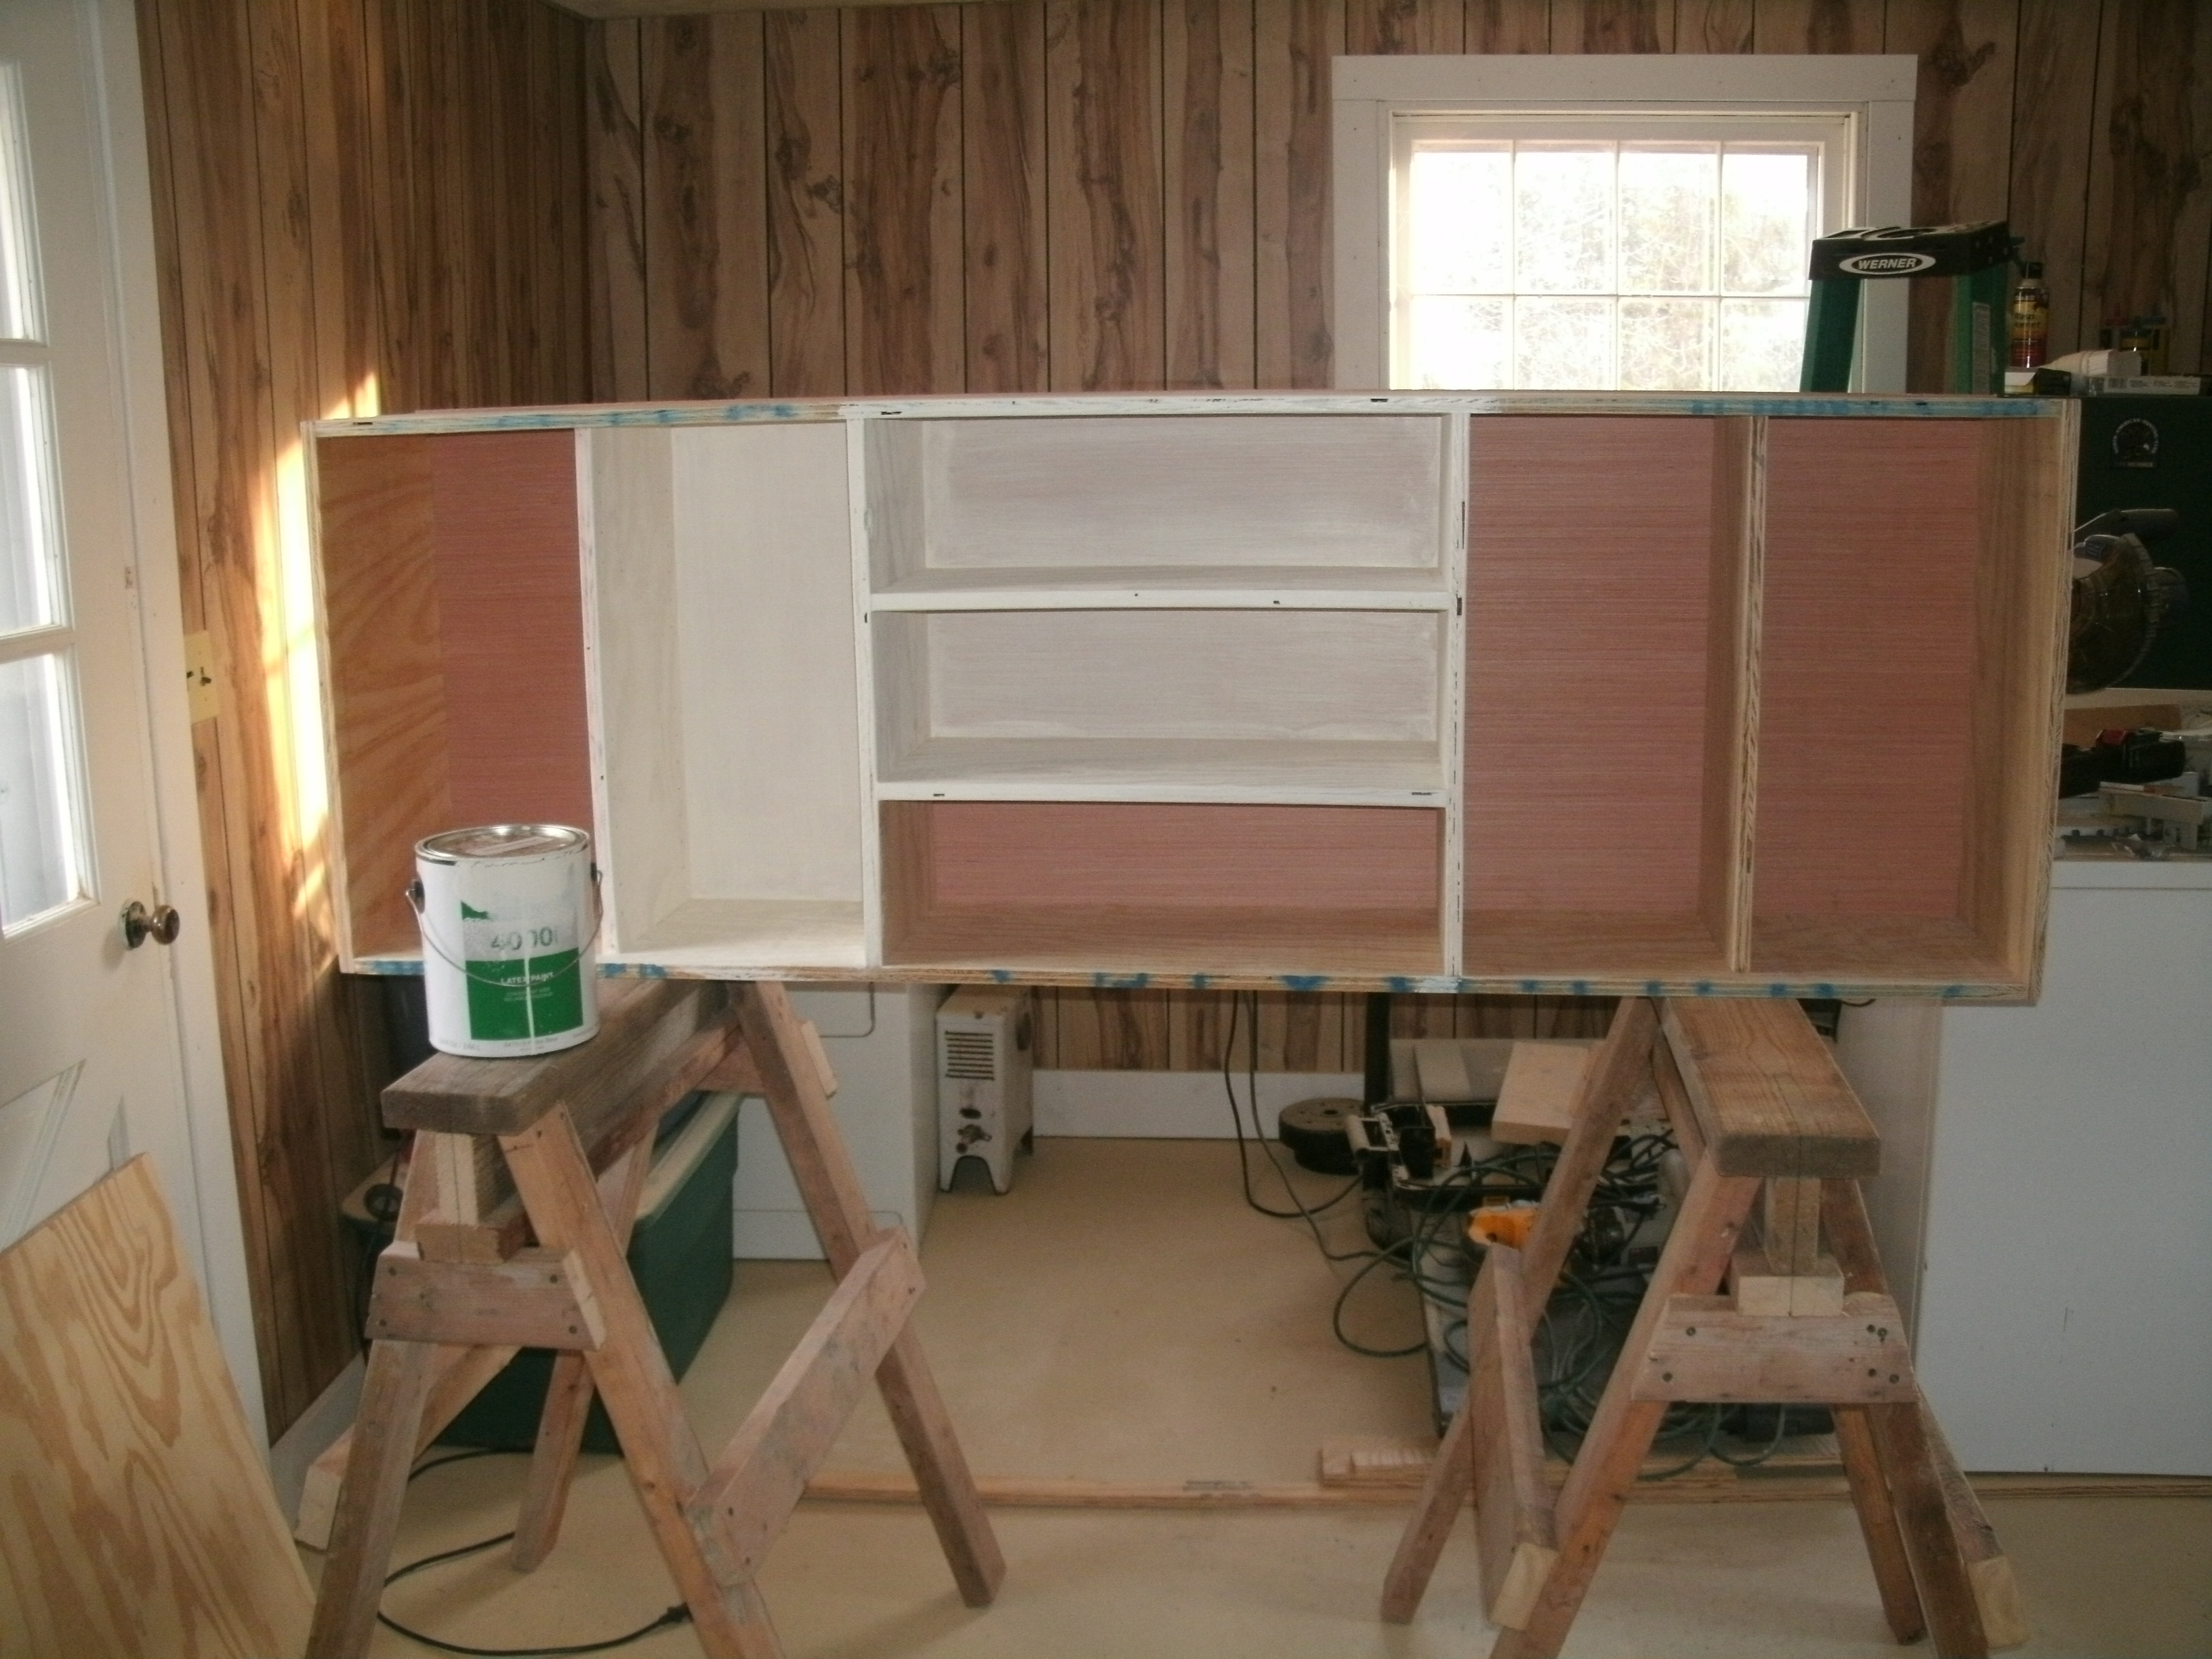 Recycled Lumber Into A Hunters Reloading Bench West